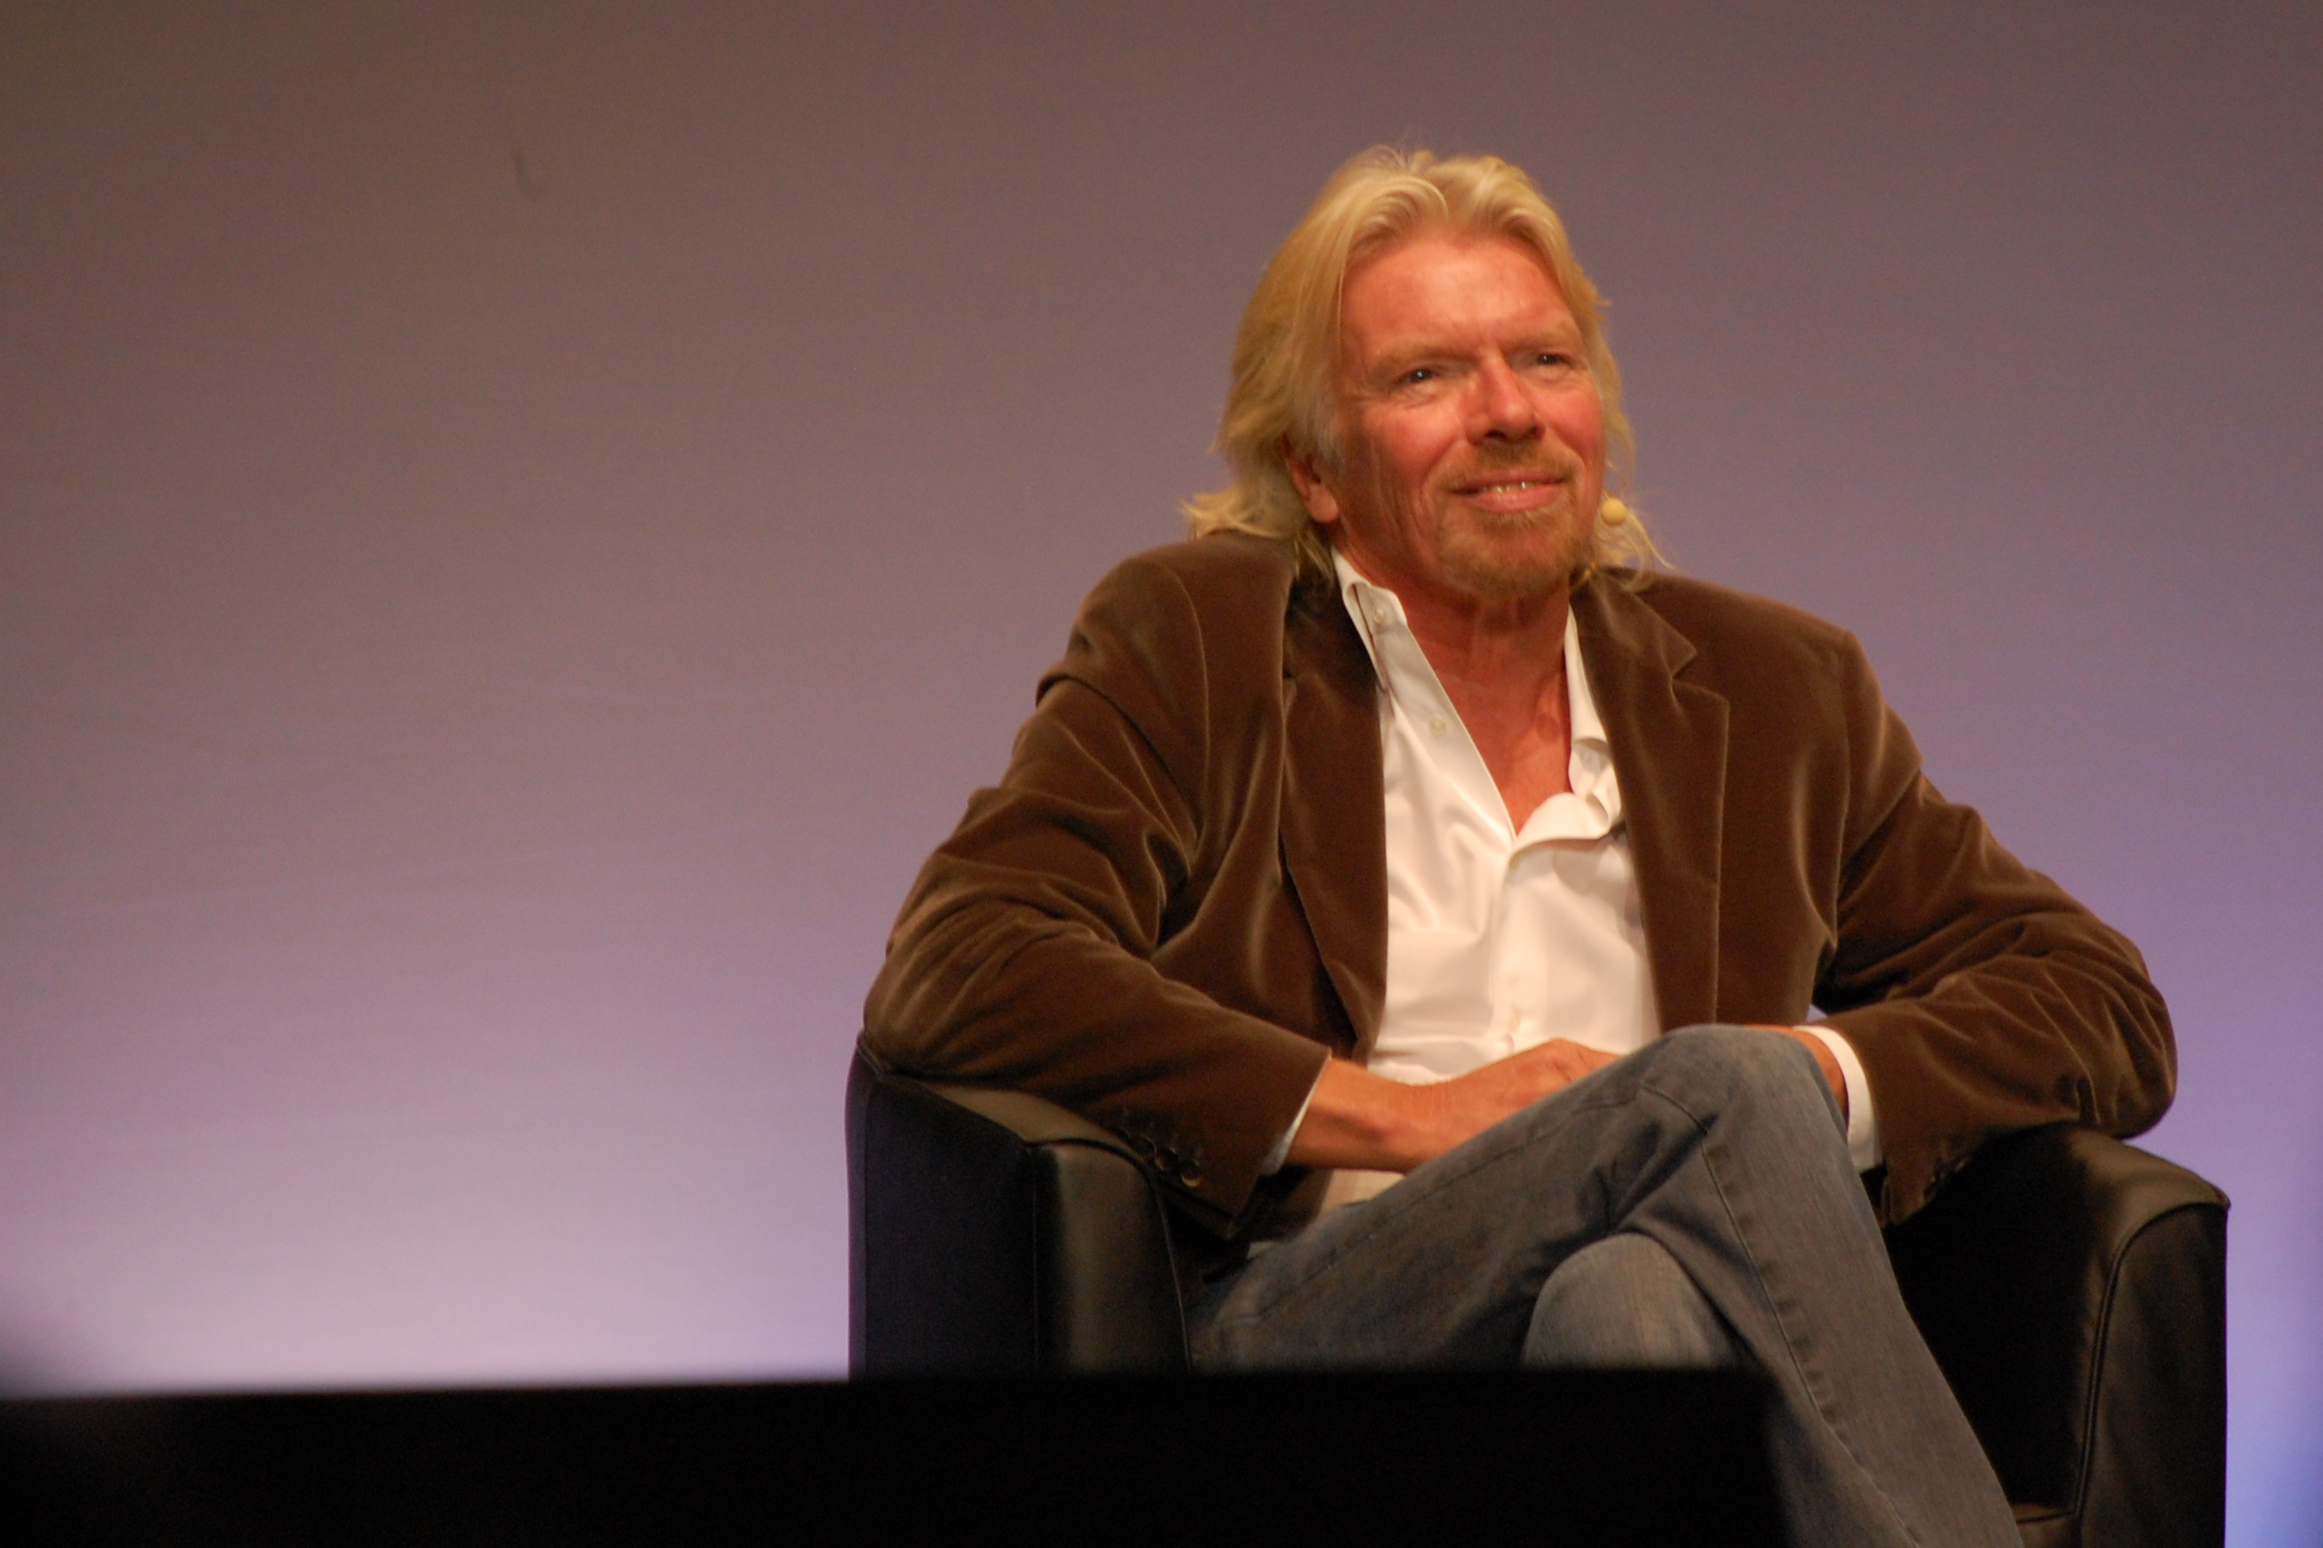 Richard Branson: Murdoch is getting his comeuppance